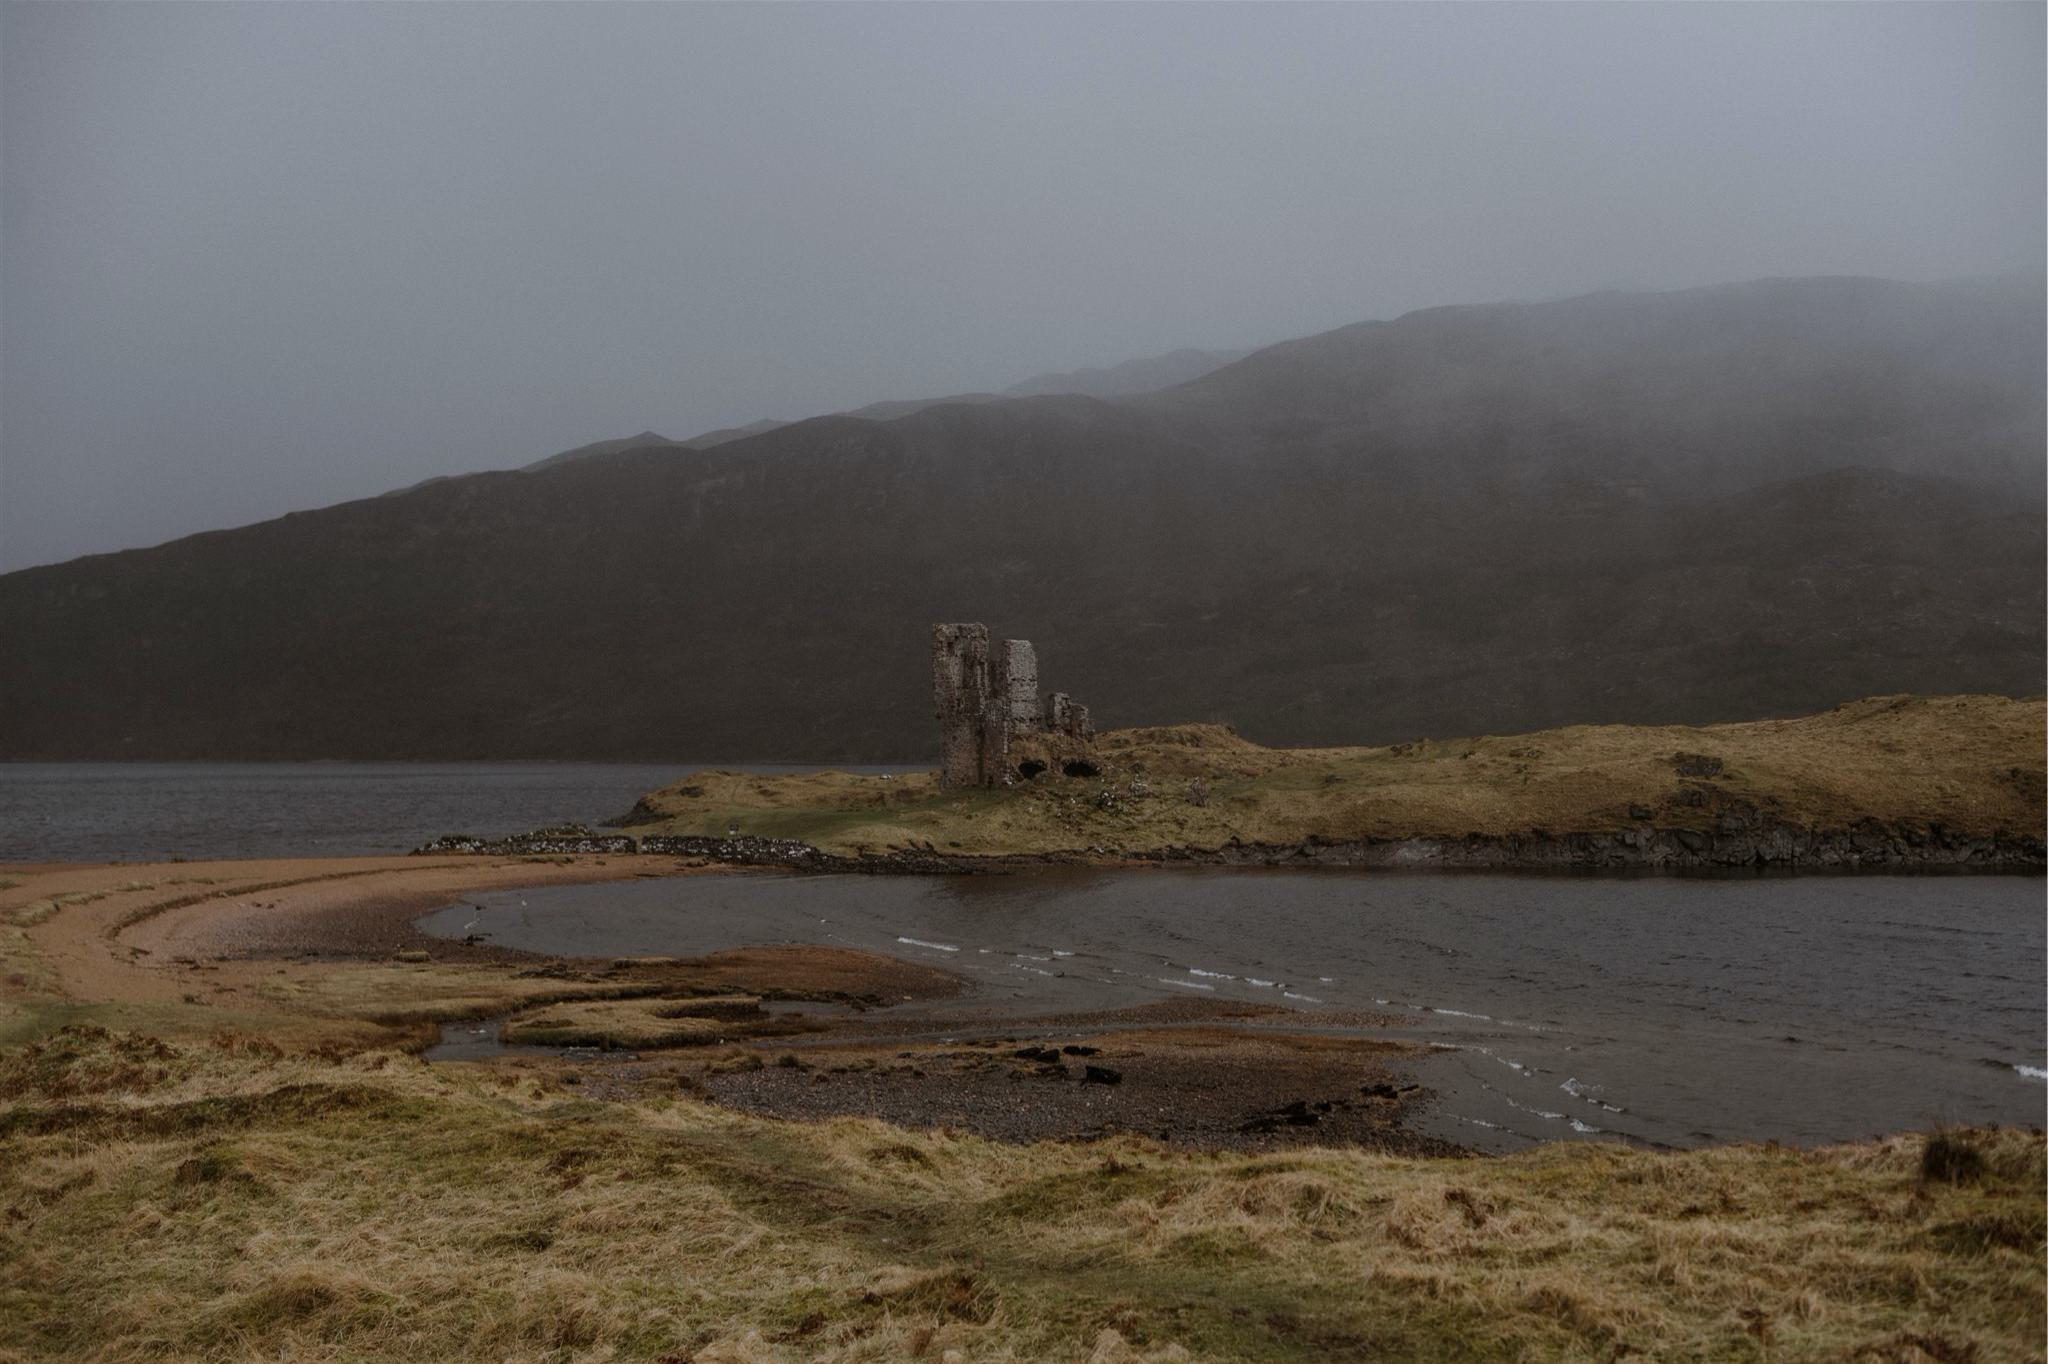 Landscape shot of a castle, sea and mountain in Assynt, Scotland